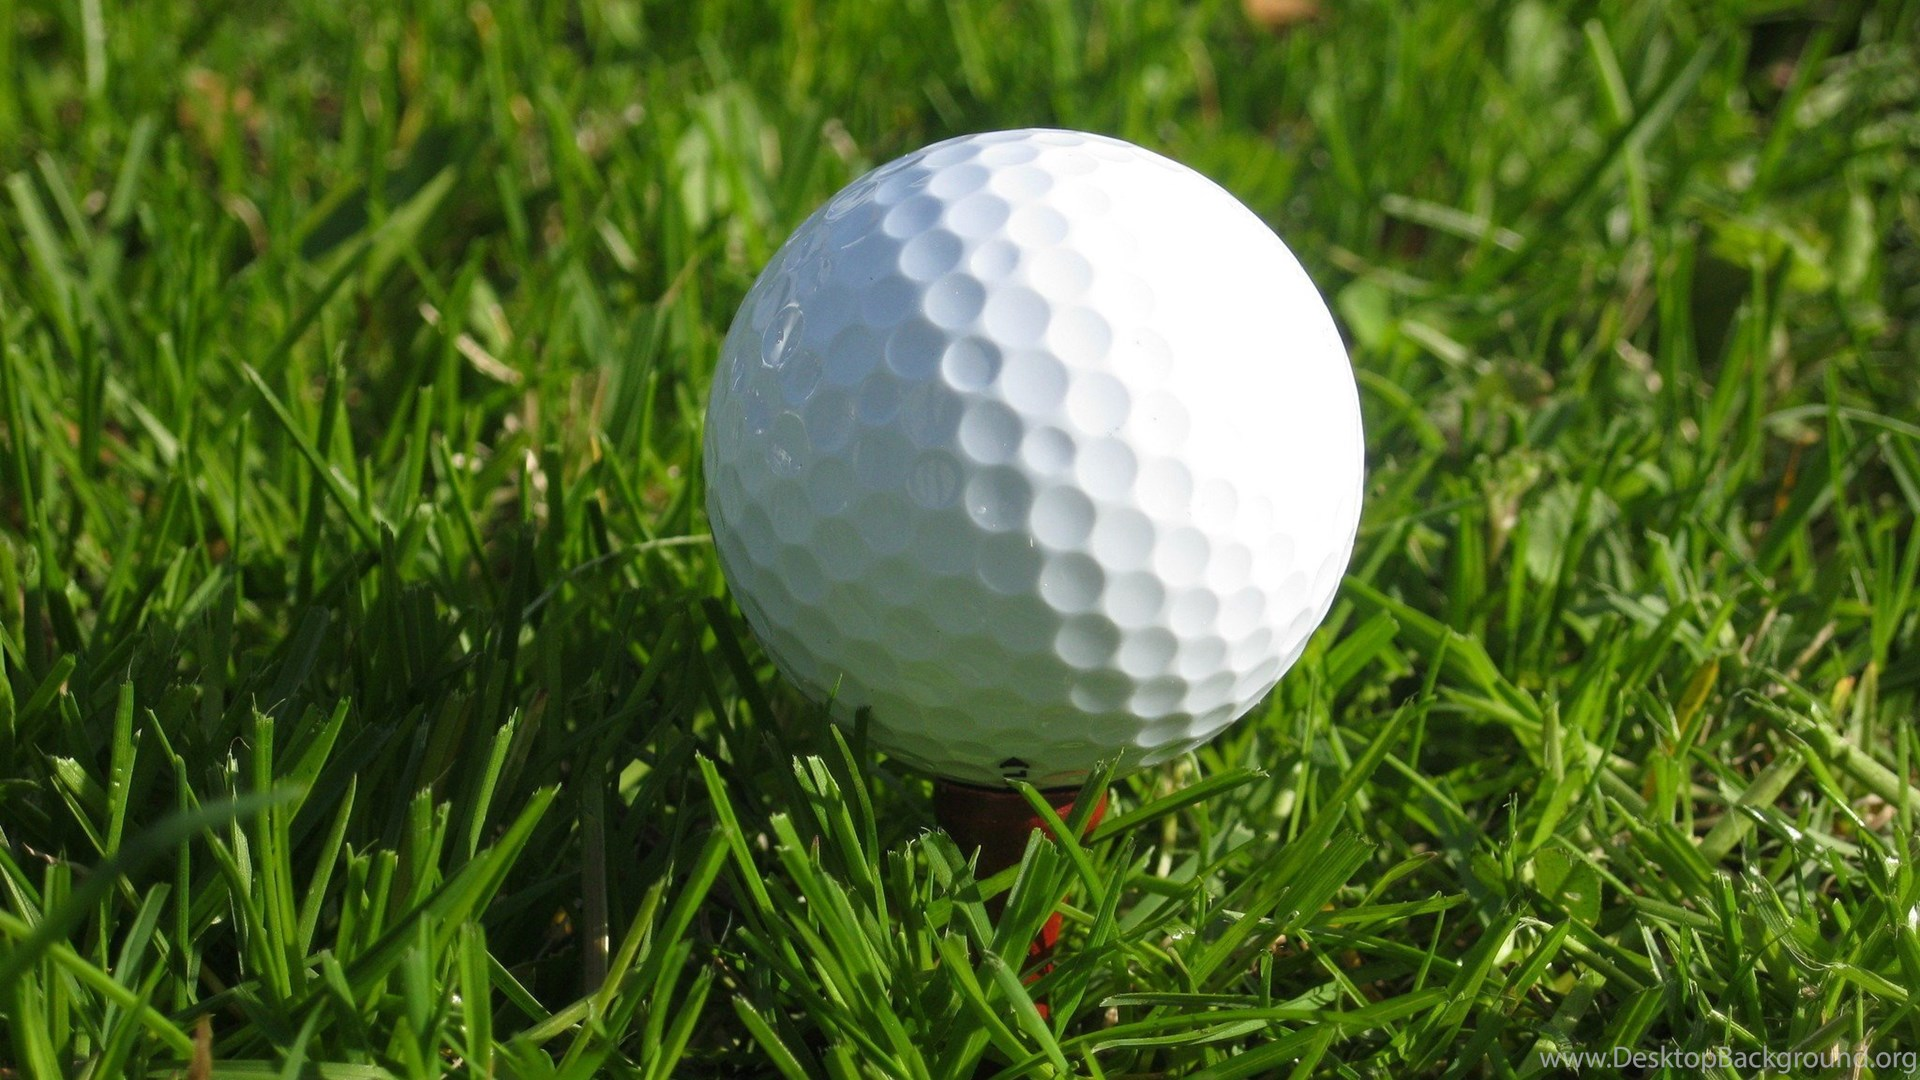 Free Golf Course Clip Art Wallpapers High Definition With Hd Desktop Background